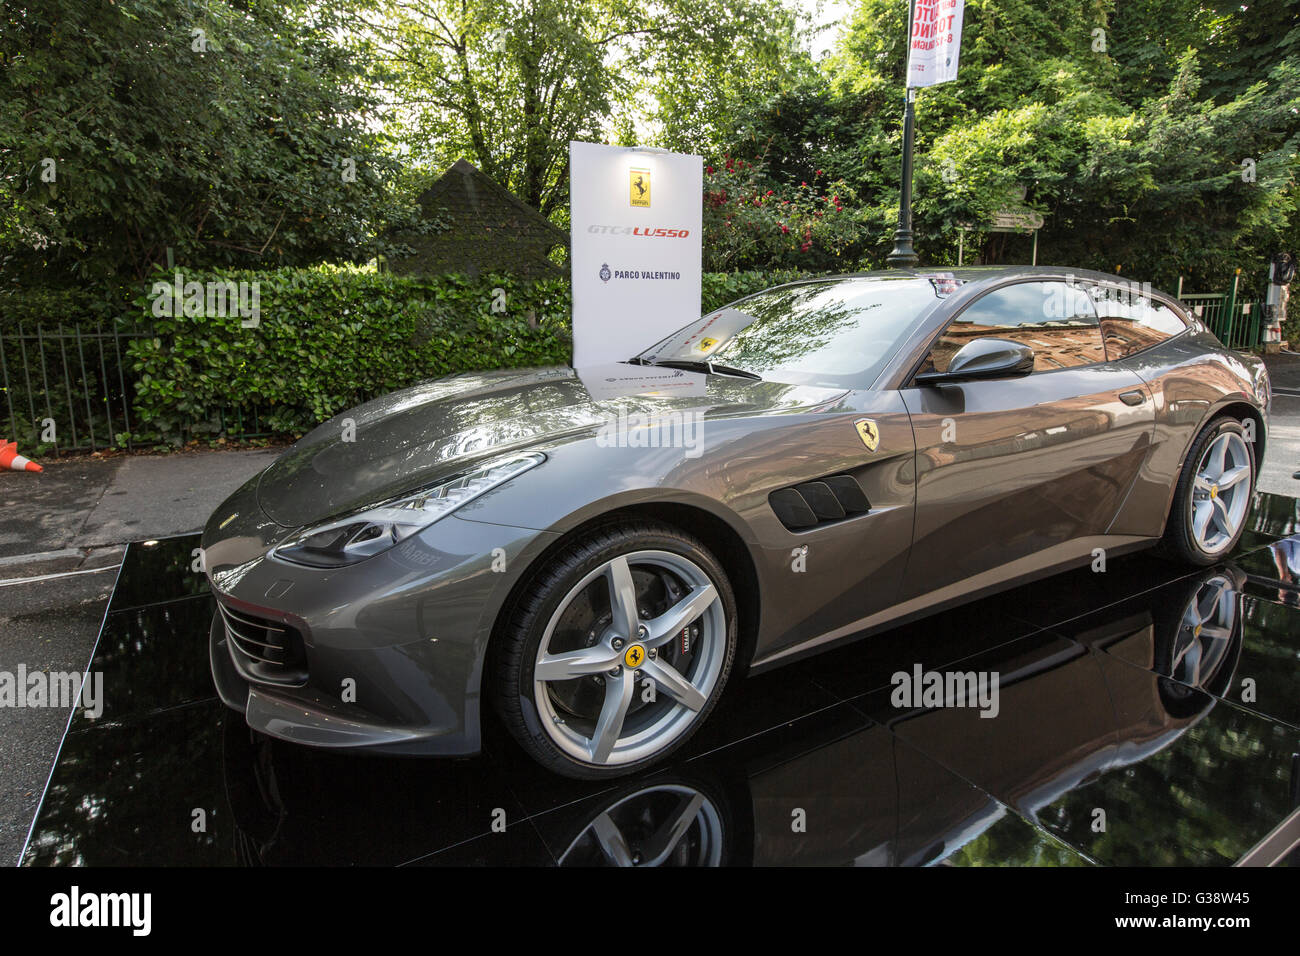 Turin, Italy. 09th June, 2016. Turin car show,from 8th to 12 th June 2016. Ferrari GTC4 Luxury Credit:  RENATO VALTERZA/Alamy - Stock Image